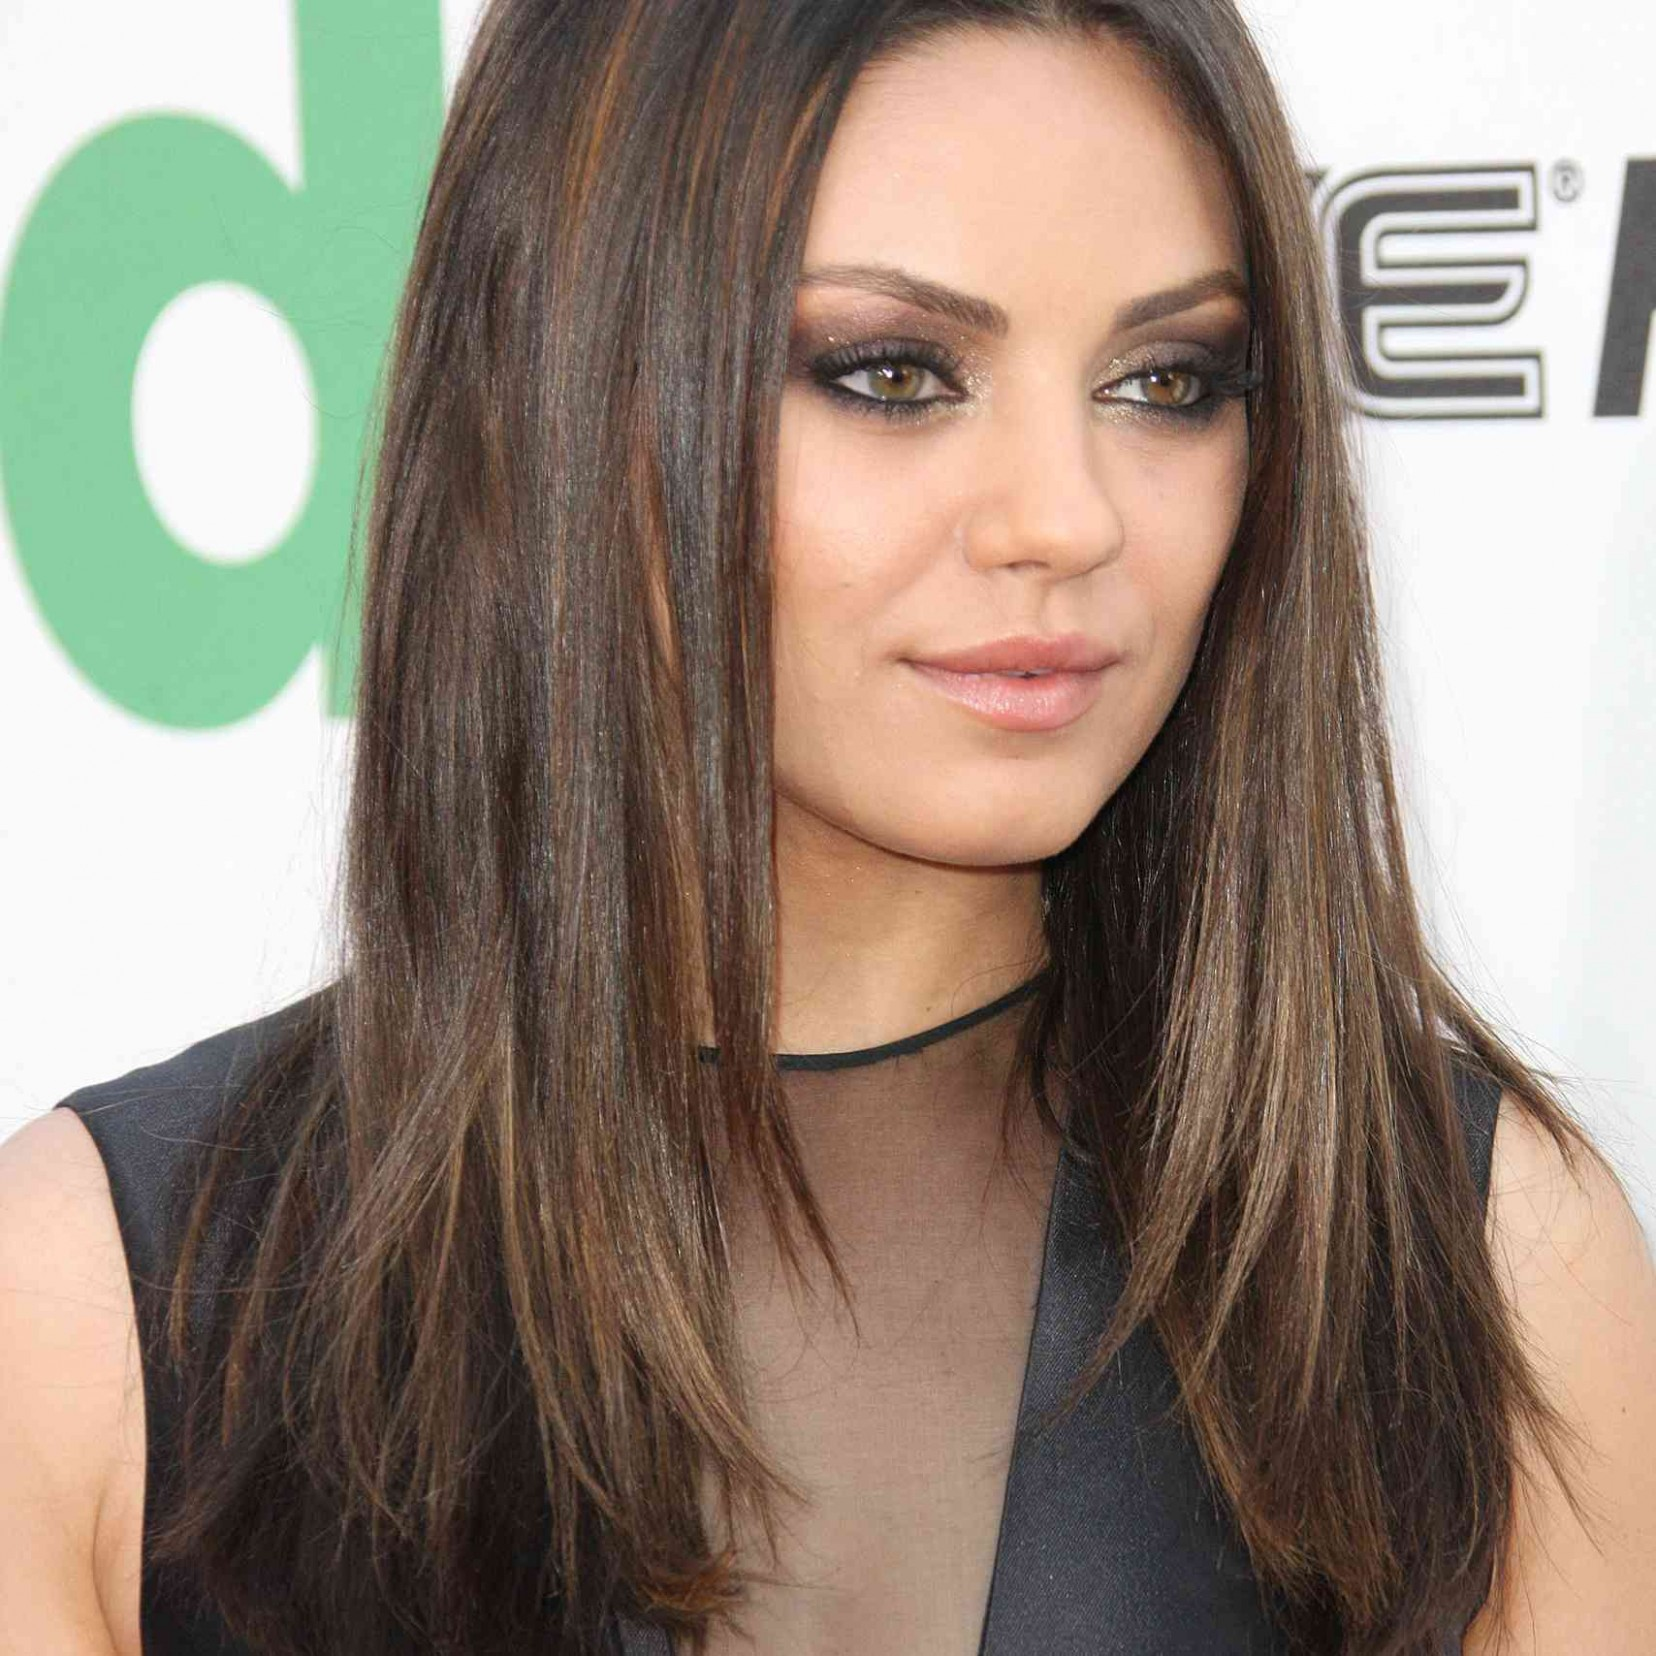 8 Of The Best Hairstyles For Round Faces Haircut For Straight Hair Round Face